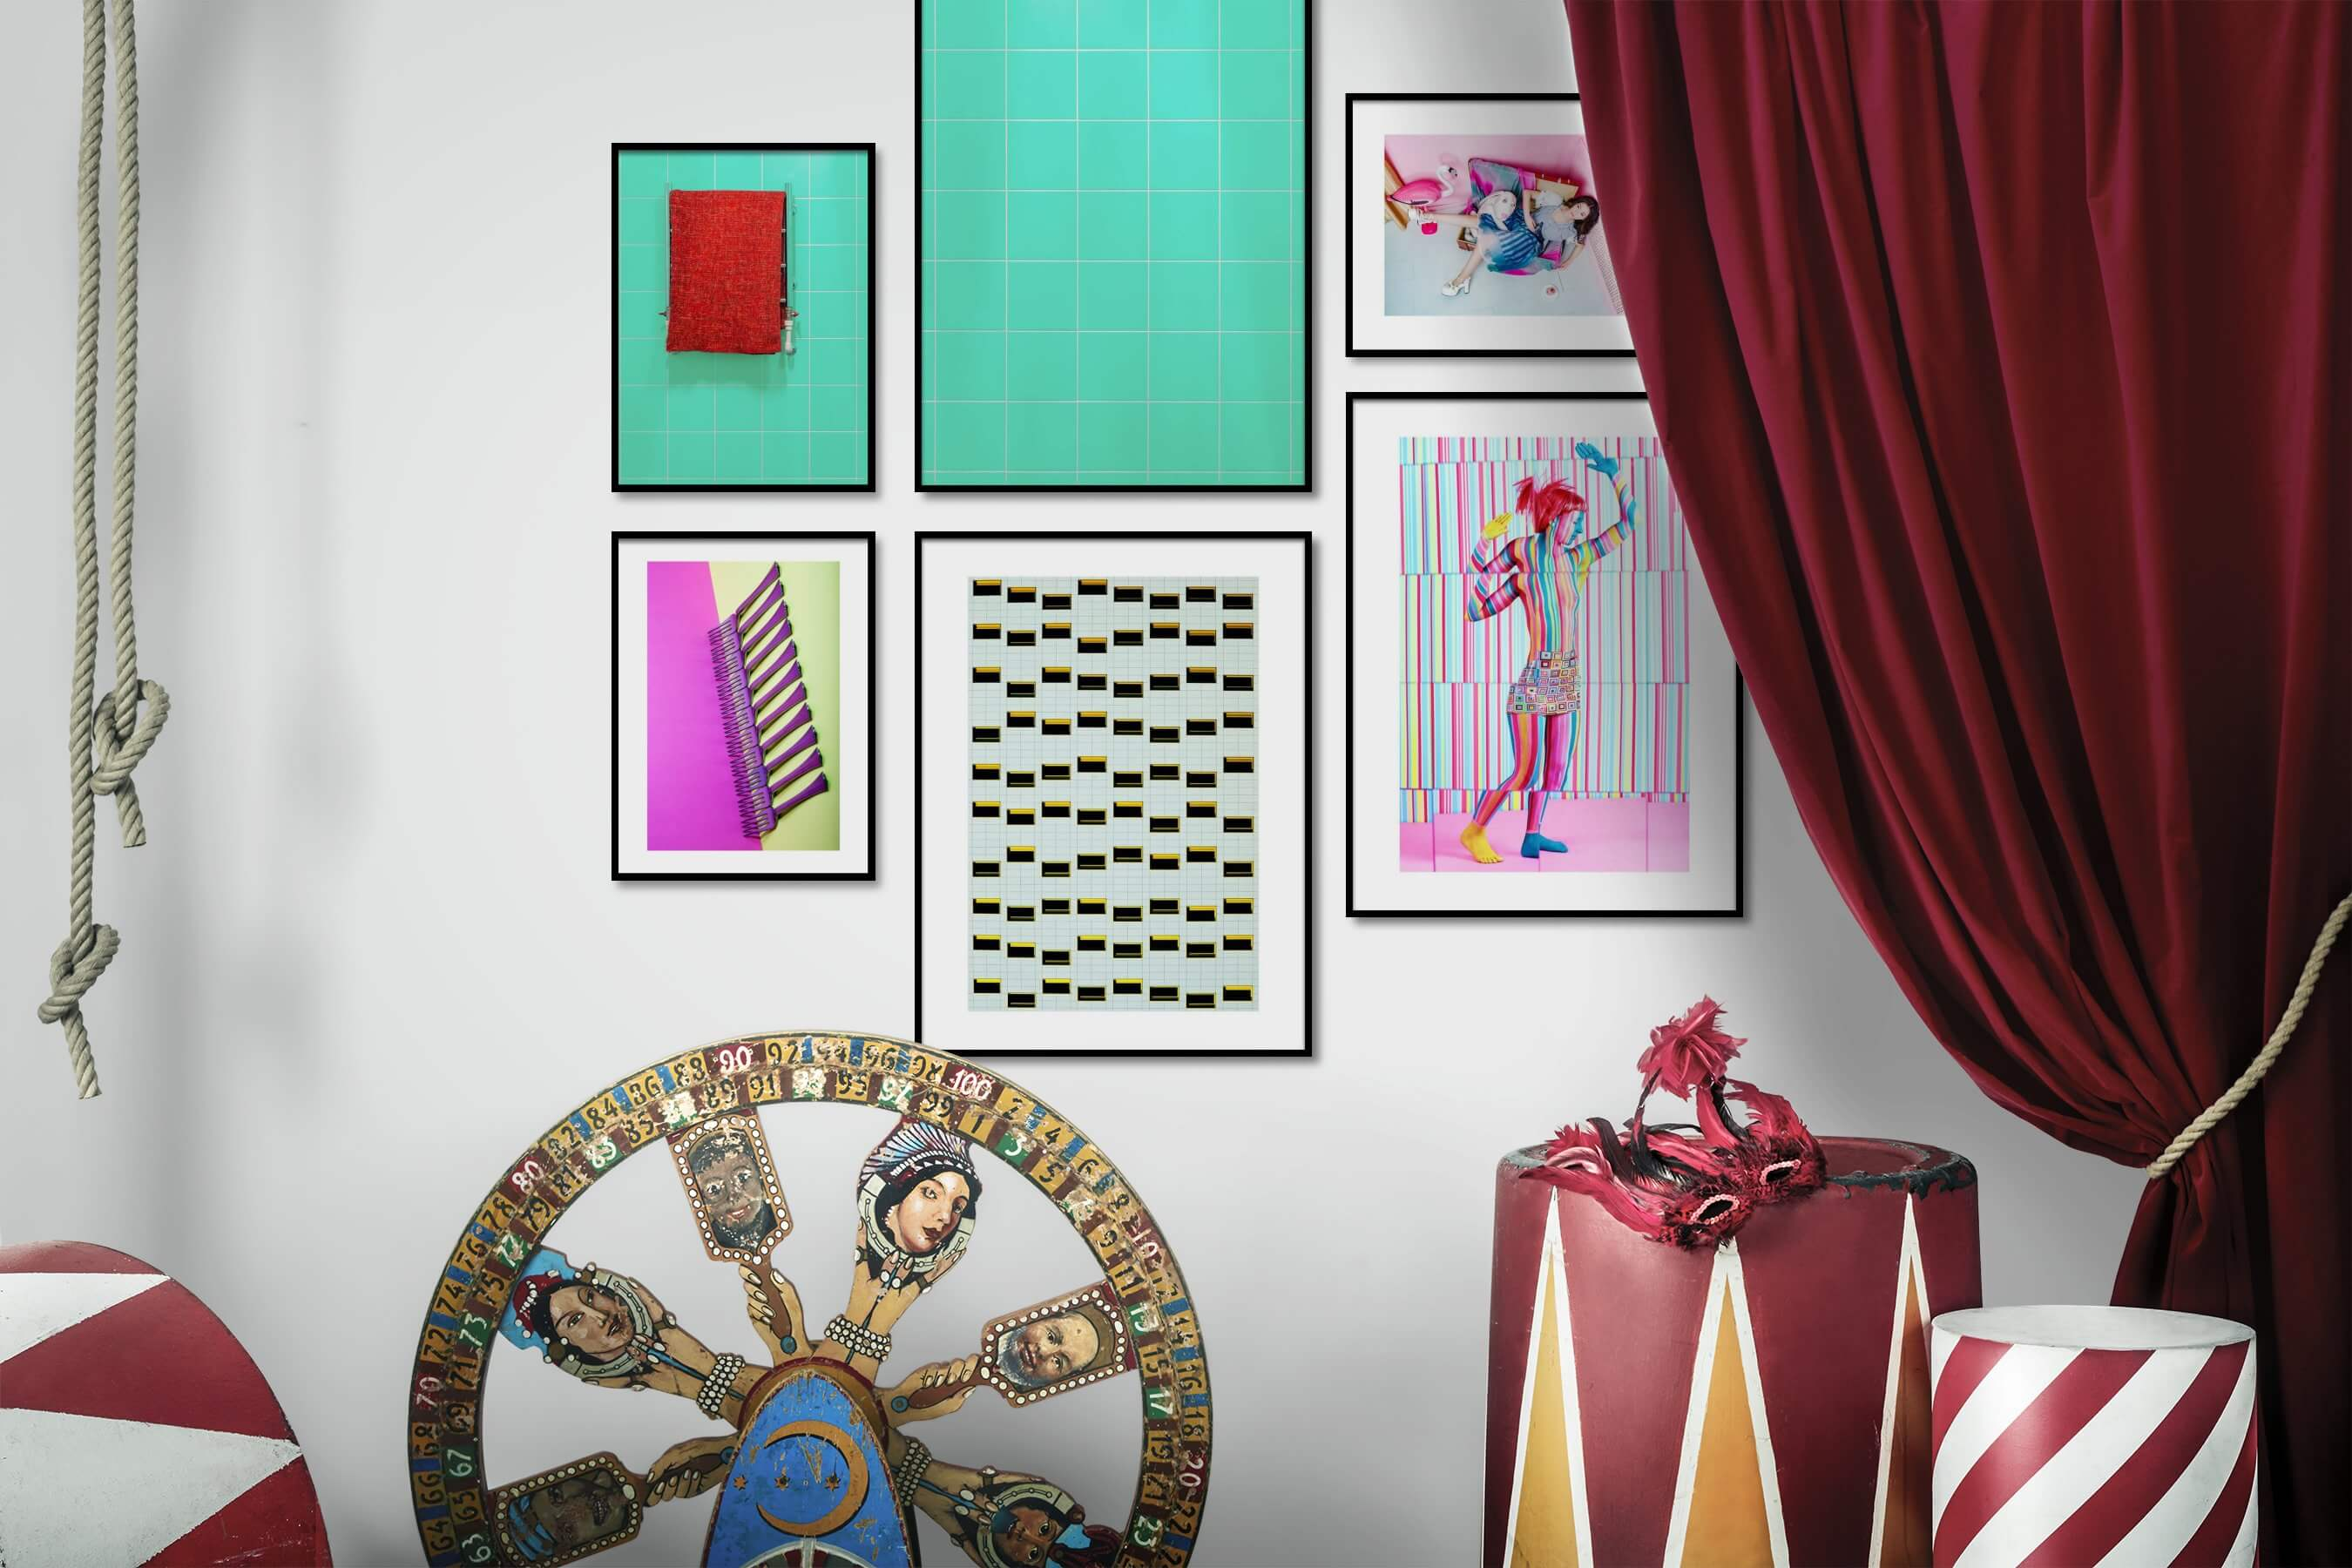 Gallery wall idea with six framed pictures arranged on a wall depicting Colorful, For the Minimalist, For the Moderate, Fashion & Beauty, Artsy, and For the Maximalist